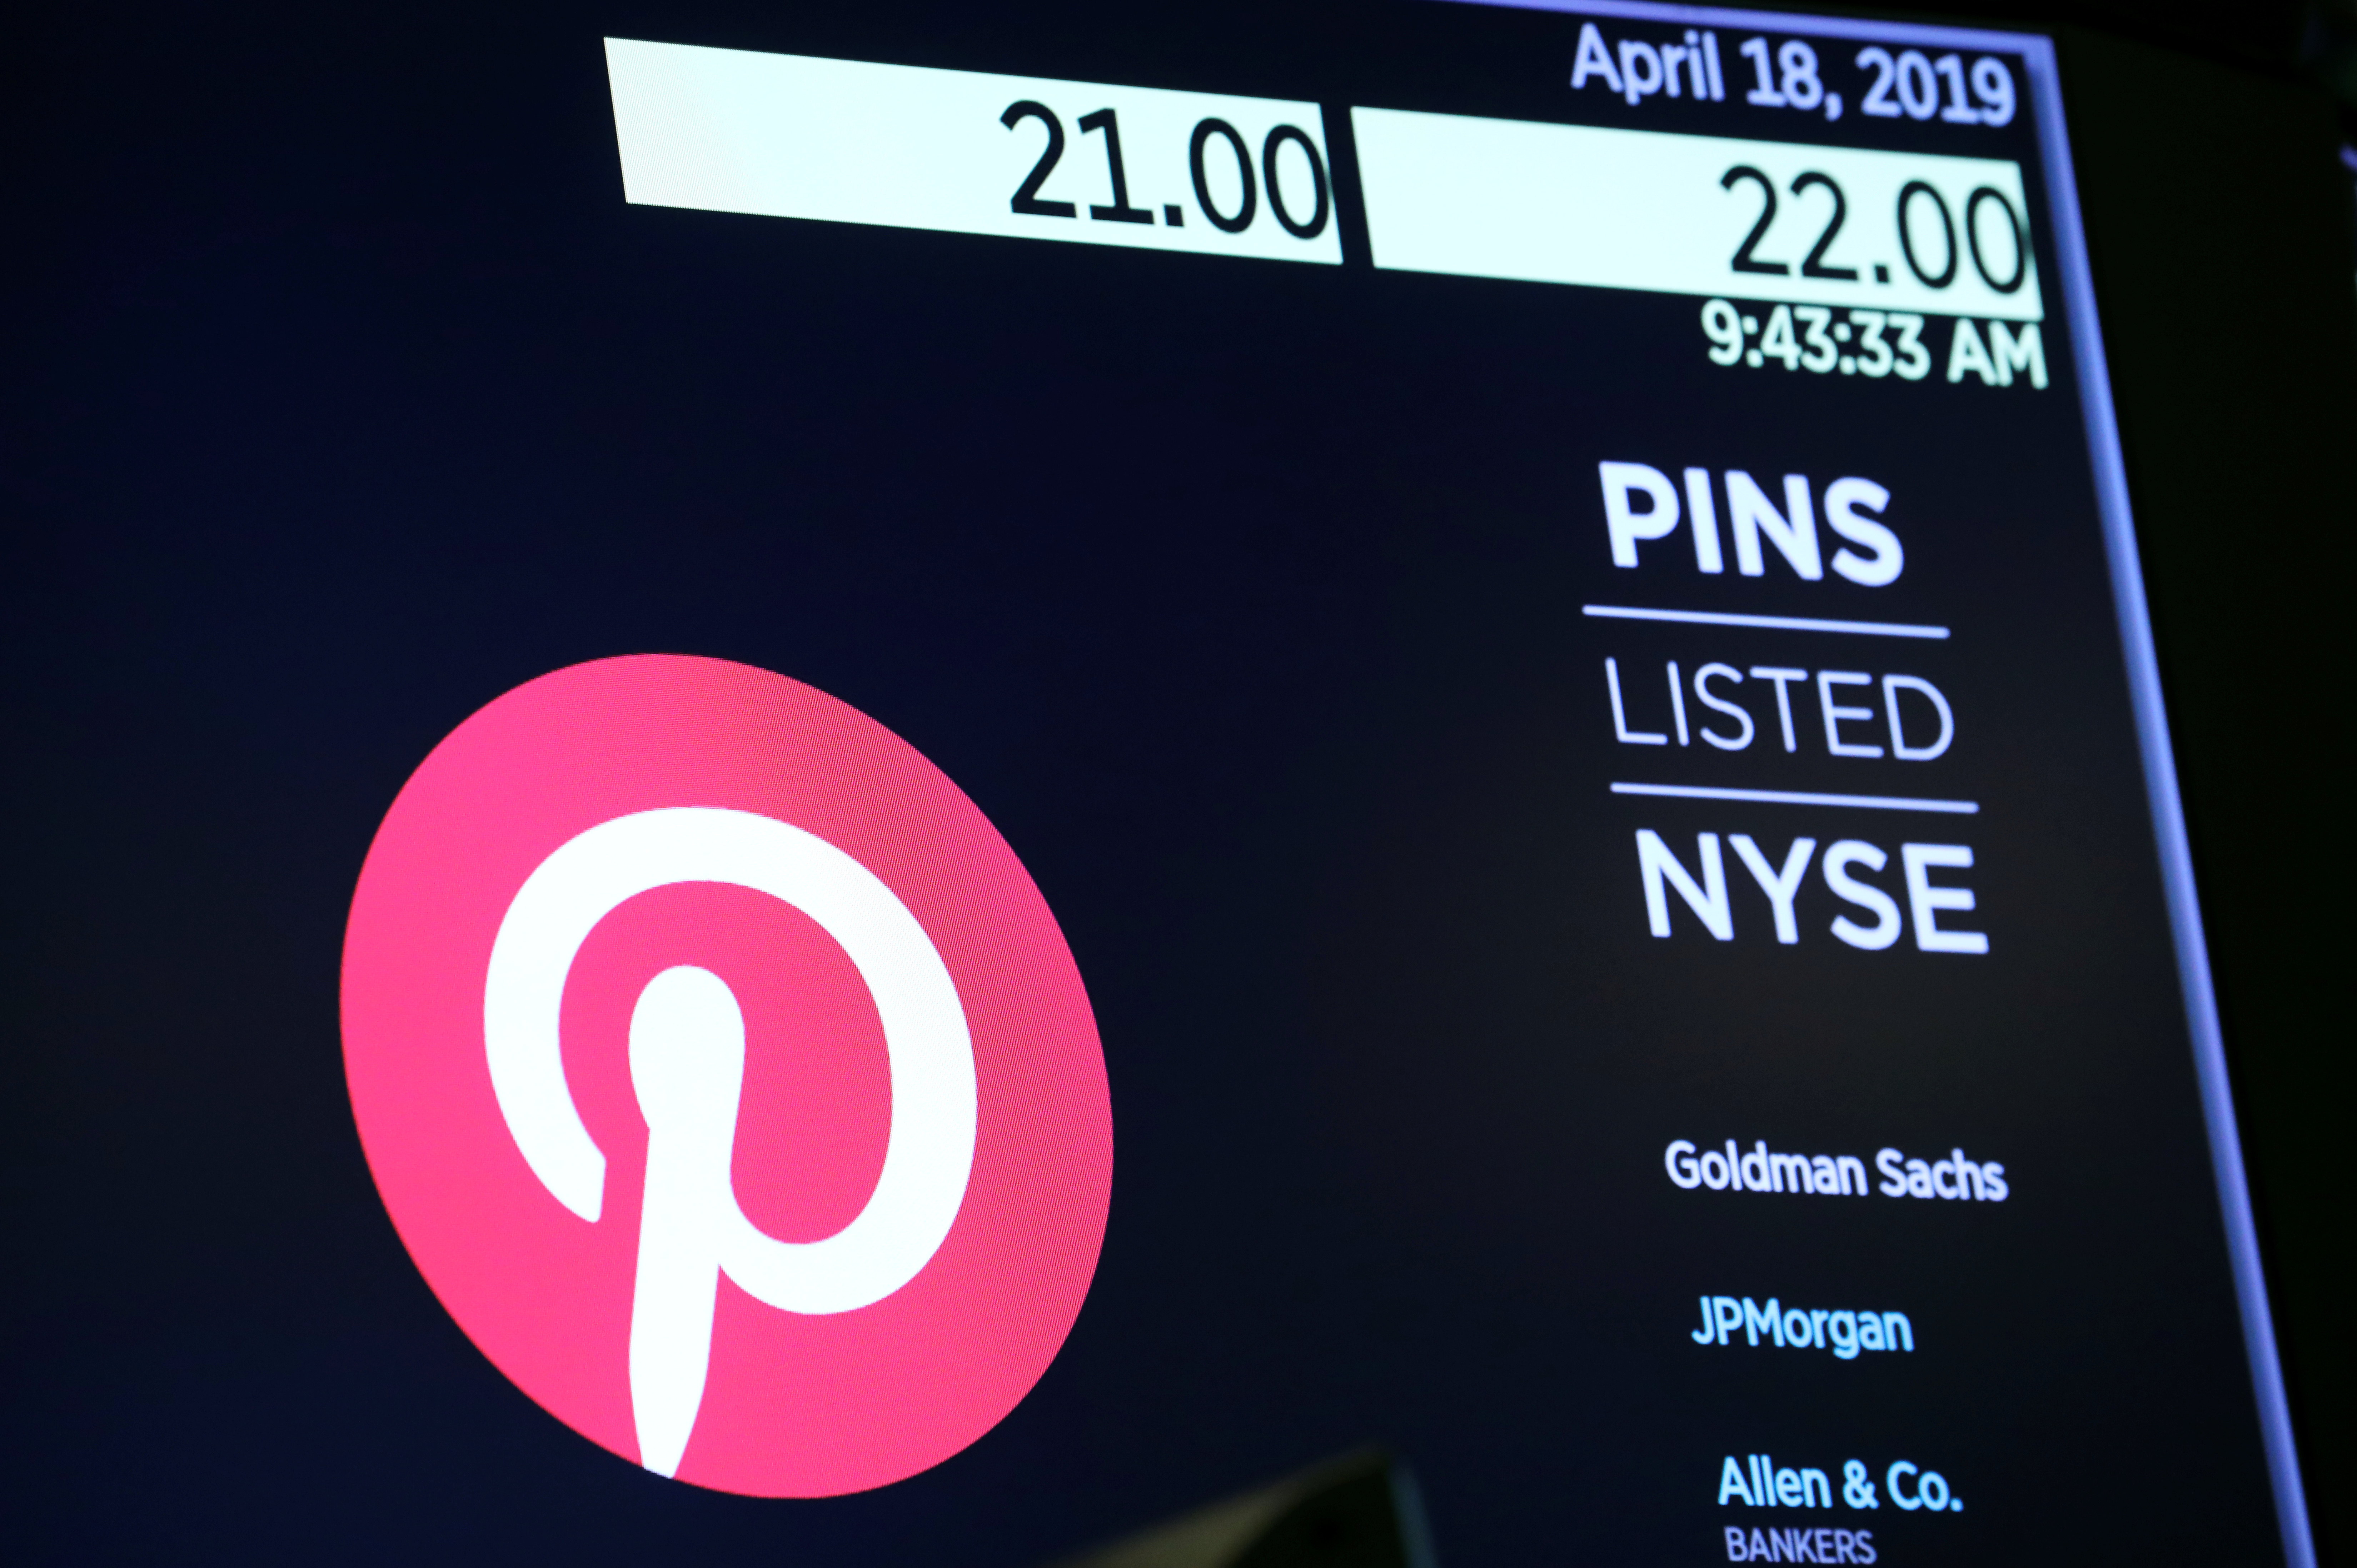 Pinterest's user growth slows as pandemic curbs ease   Reuters